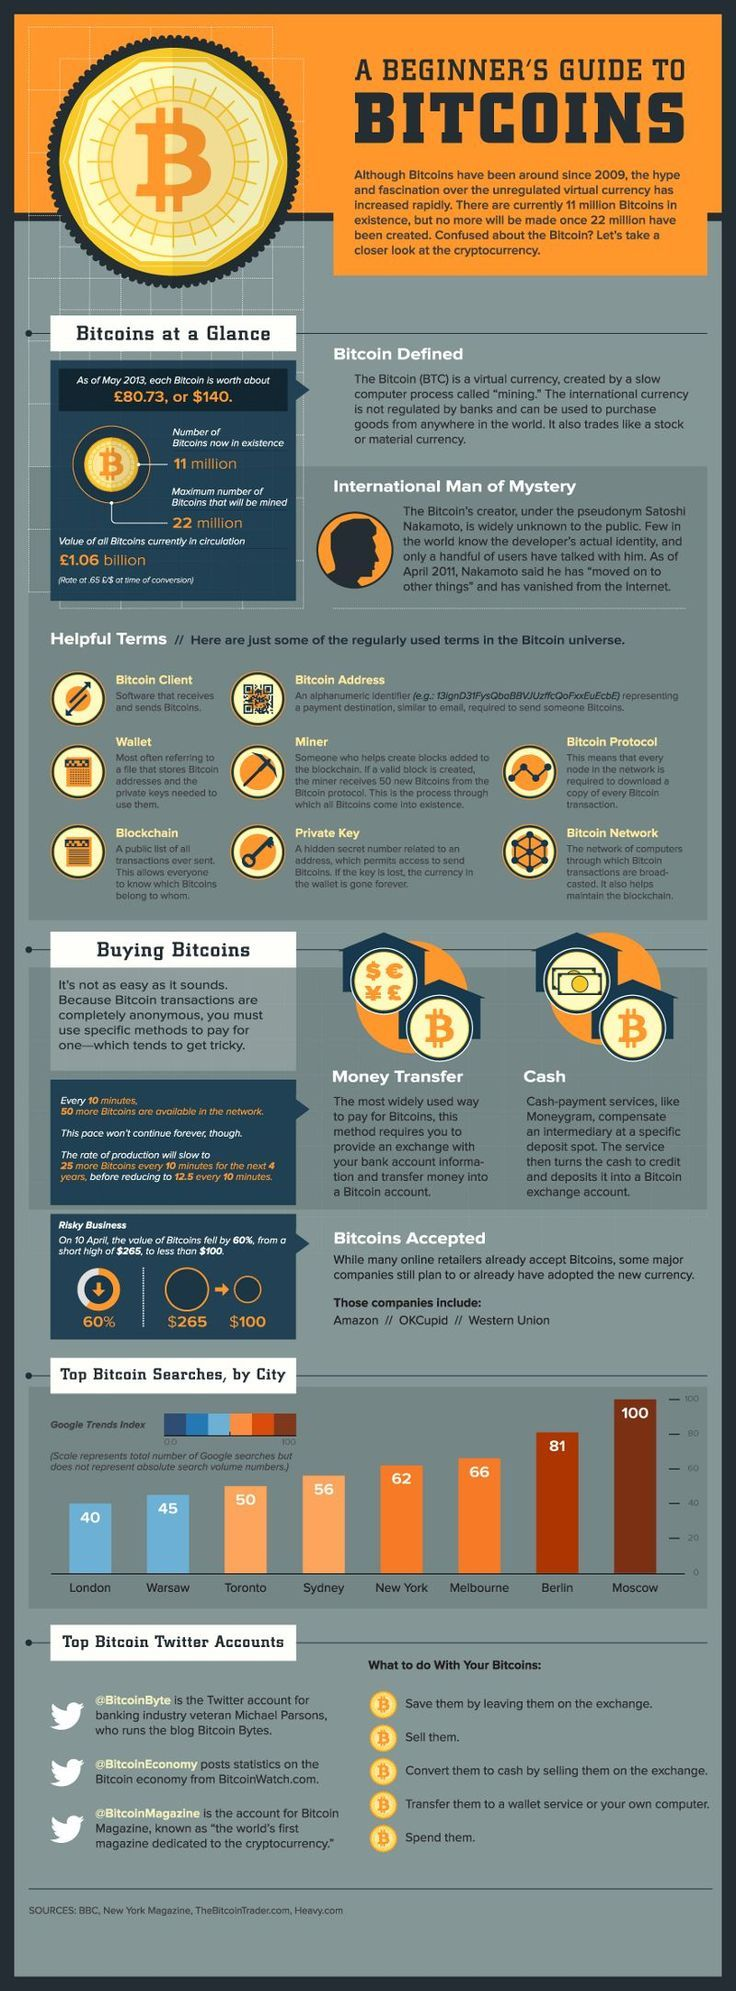 How to Buy and Sell Bitcoins